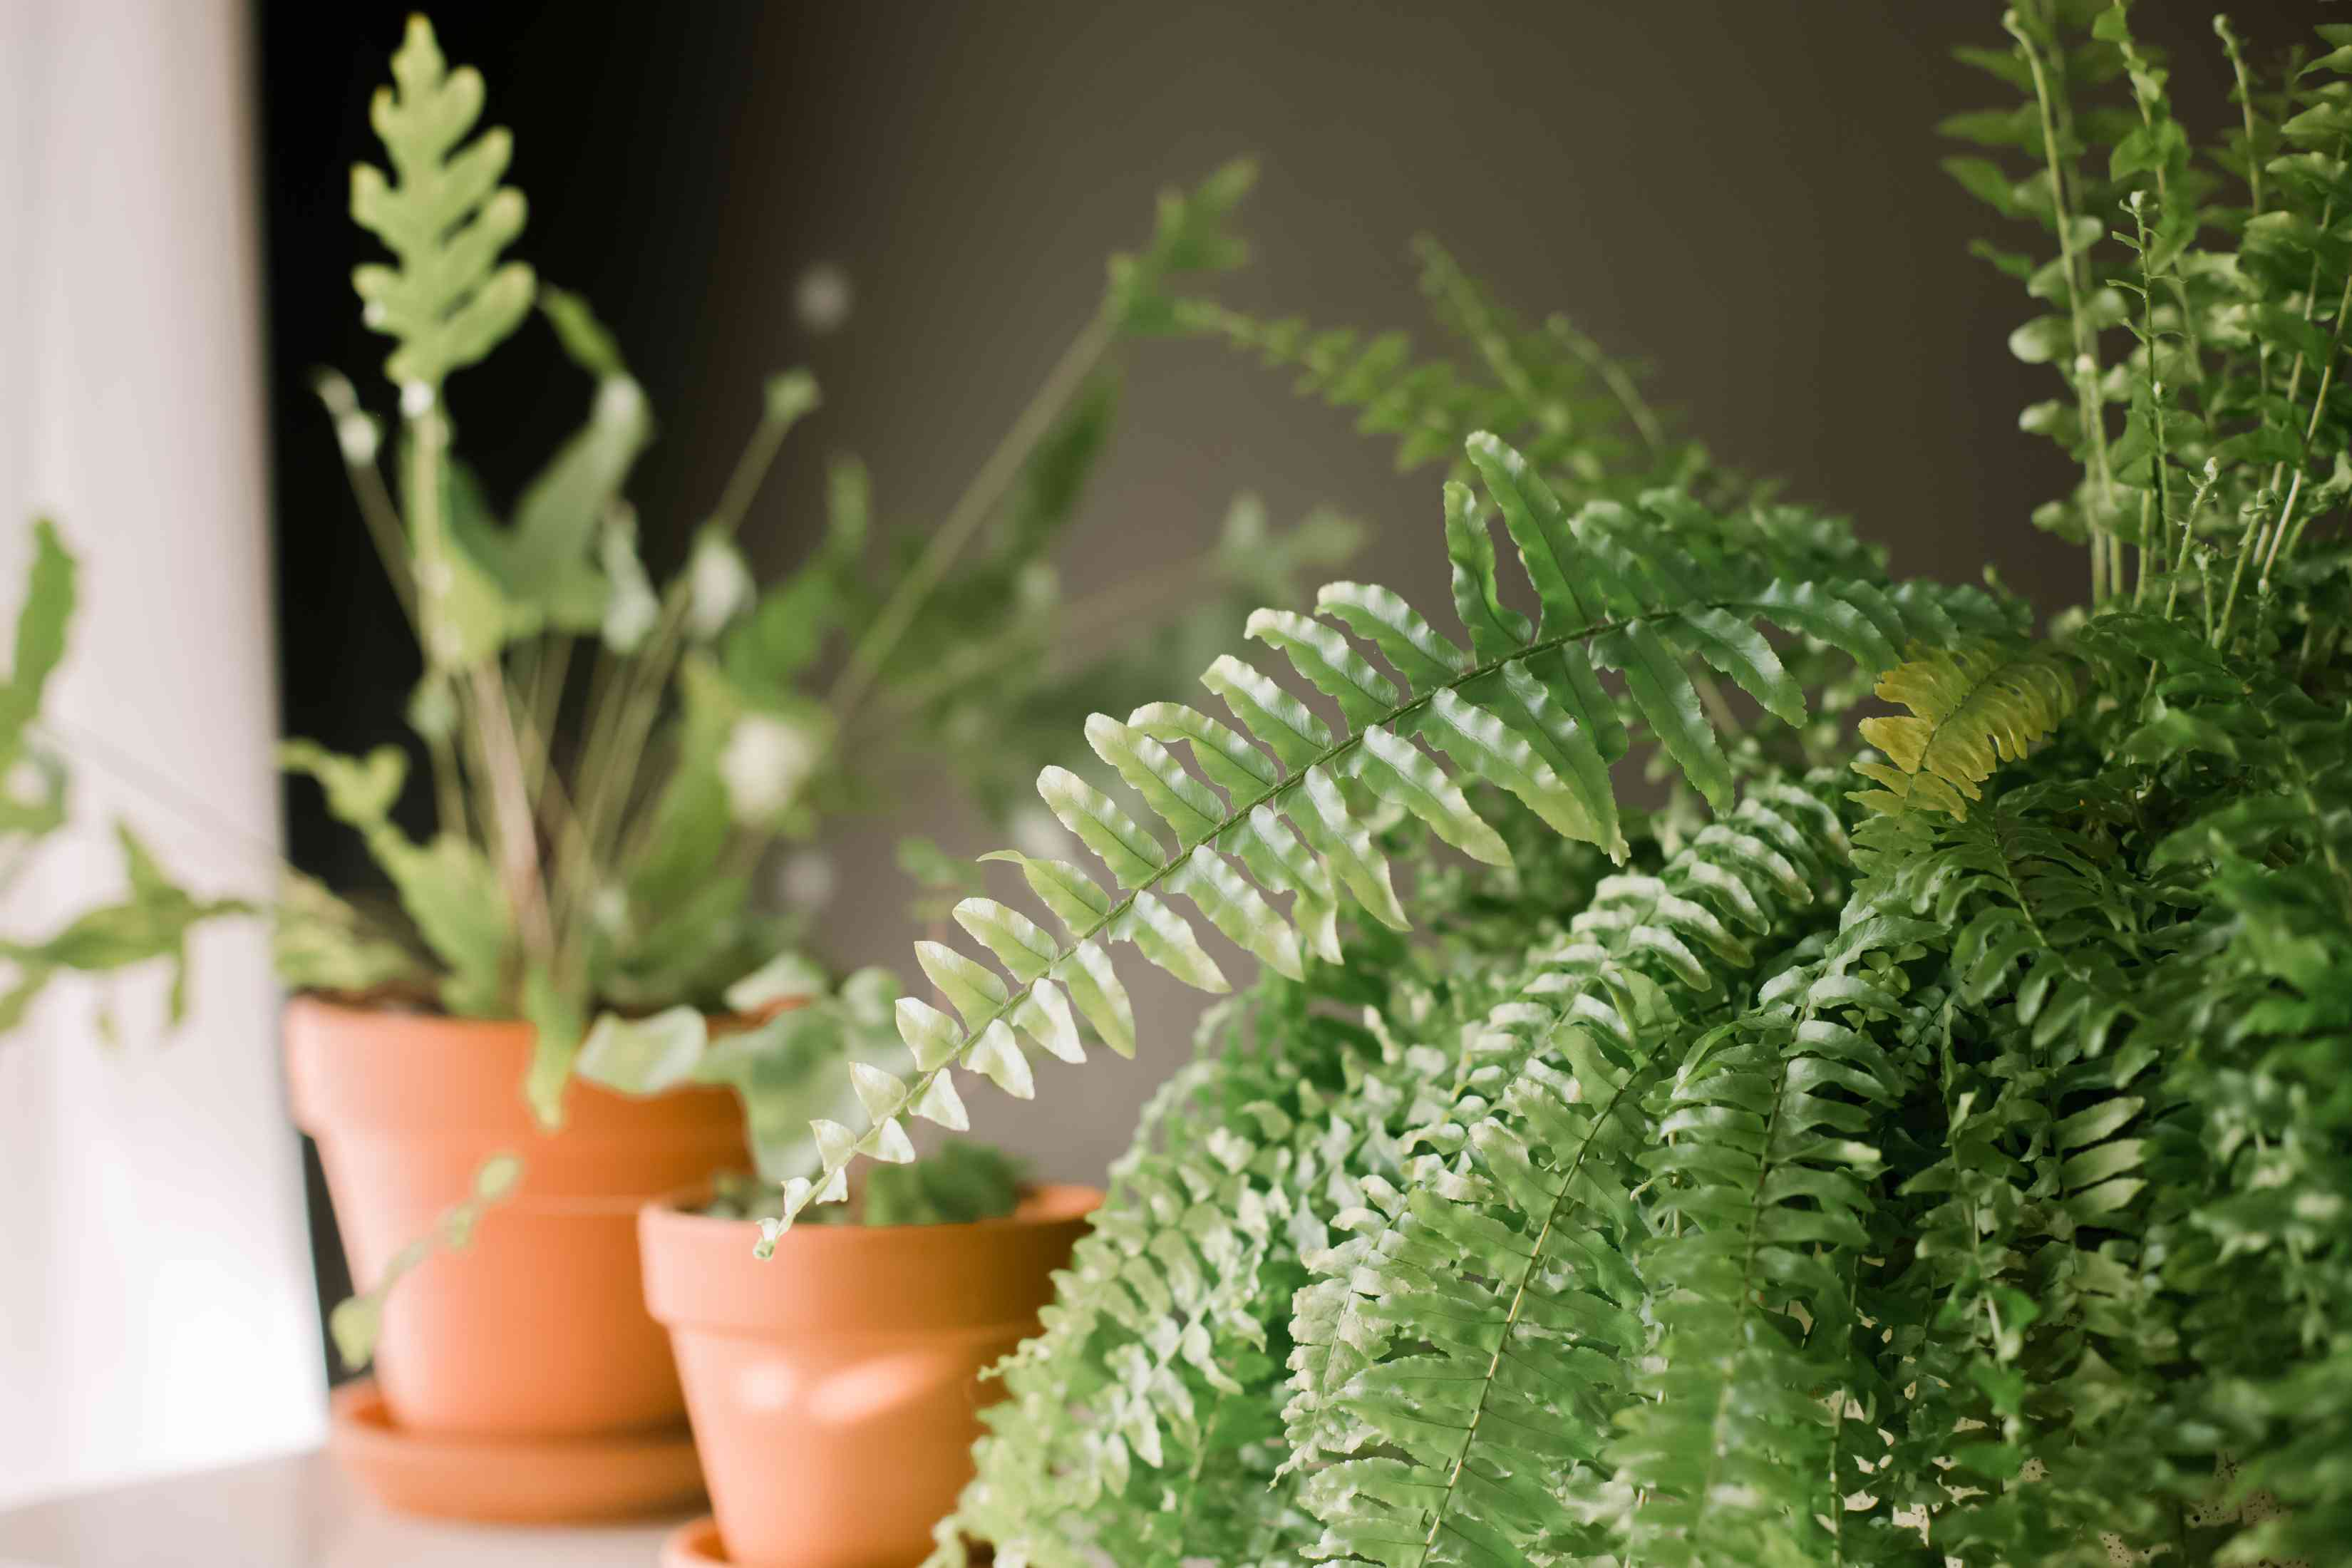 closeup of Boston fern with others in the background